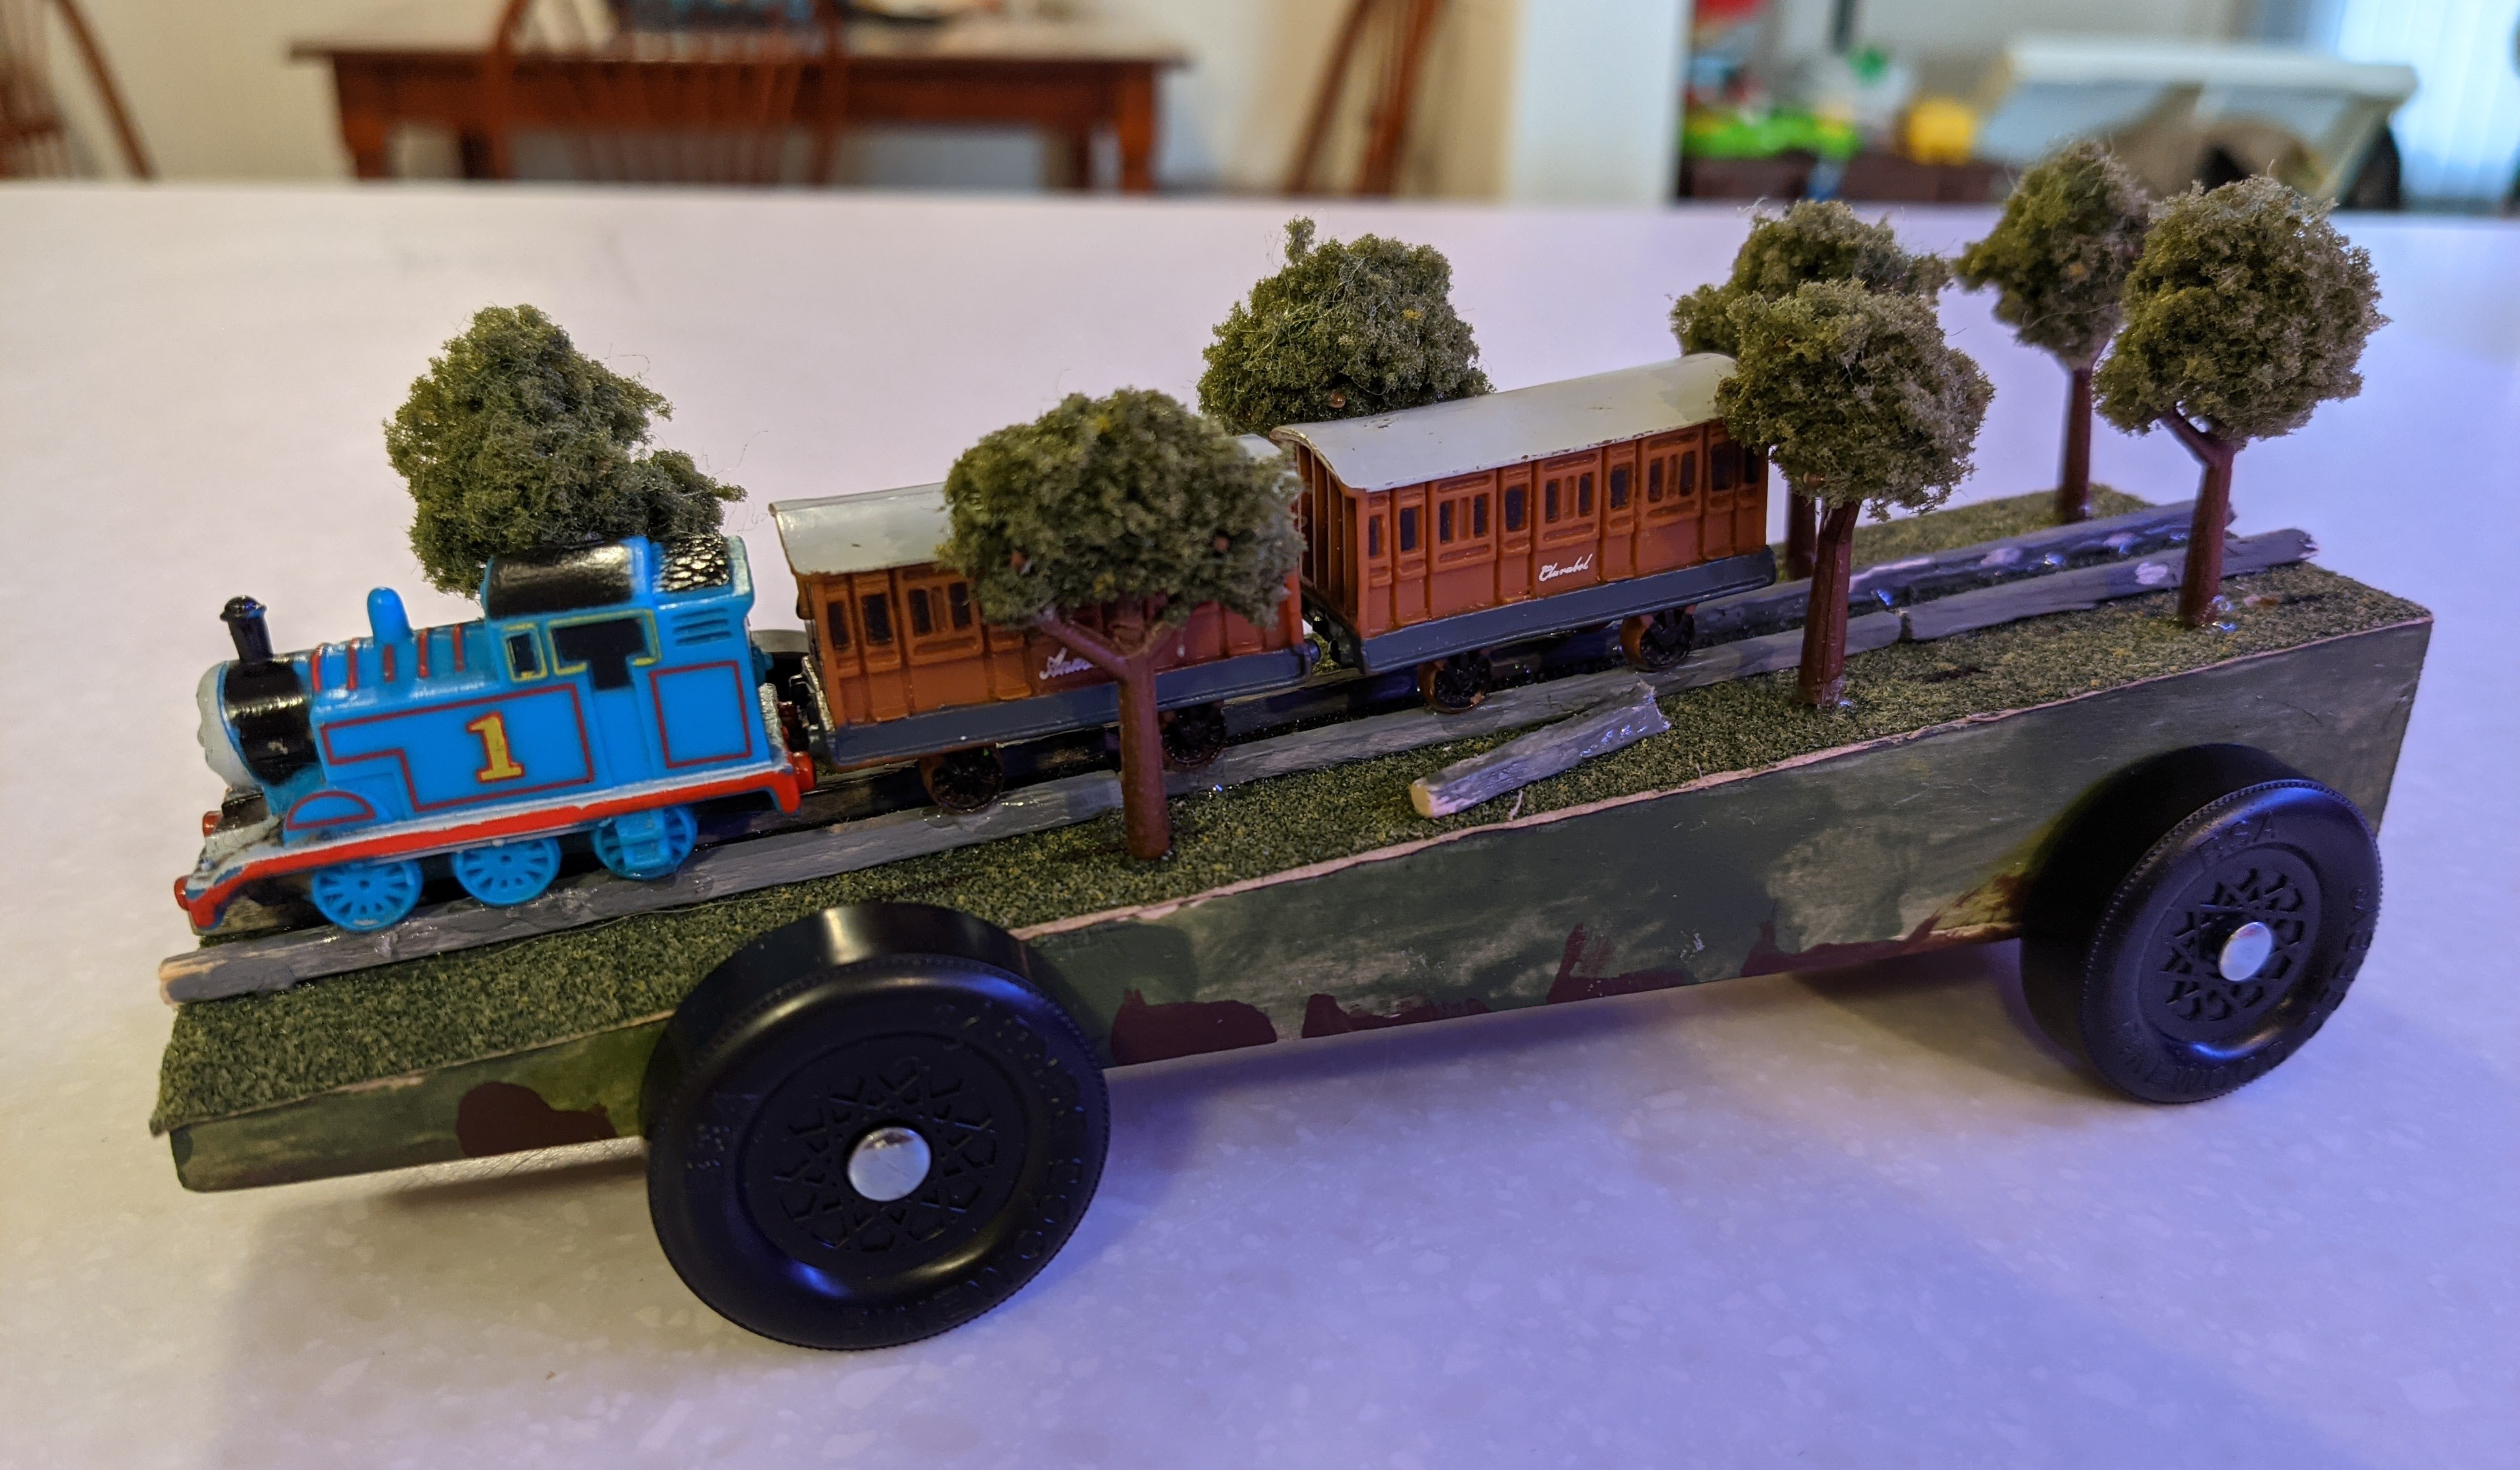 Thomas, Annie, & Clarabel In The Forest